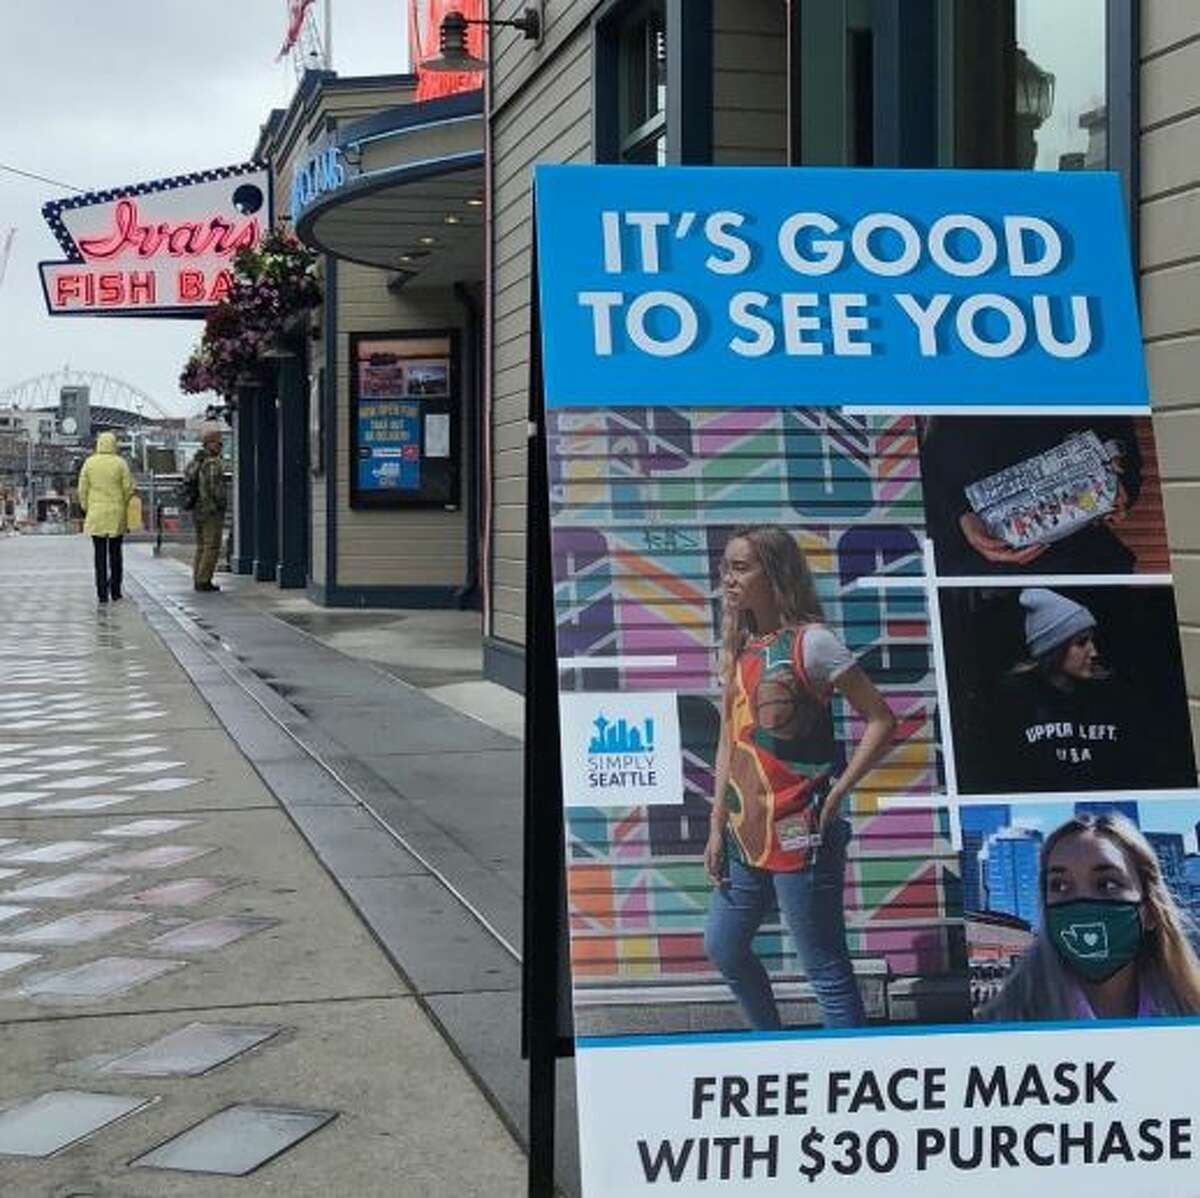 Under Phase 2 of Gov. Jay Inslee's Safe Start Washington plan, Simply Seattle was able to reopen their brick-and-mortar locations in the city after over three months of being closed. But without the foot traffic of visitors, the stores have seen sales drastically decrease.